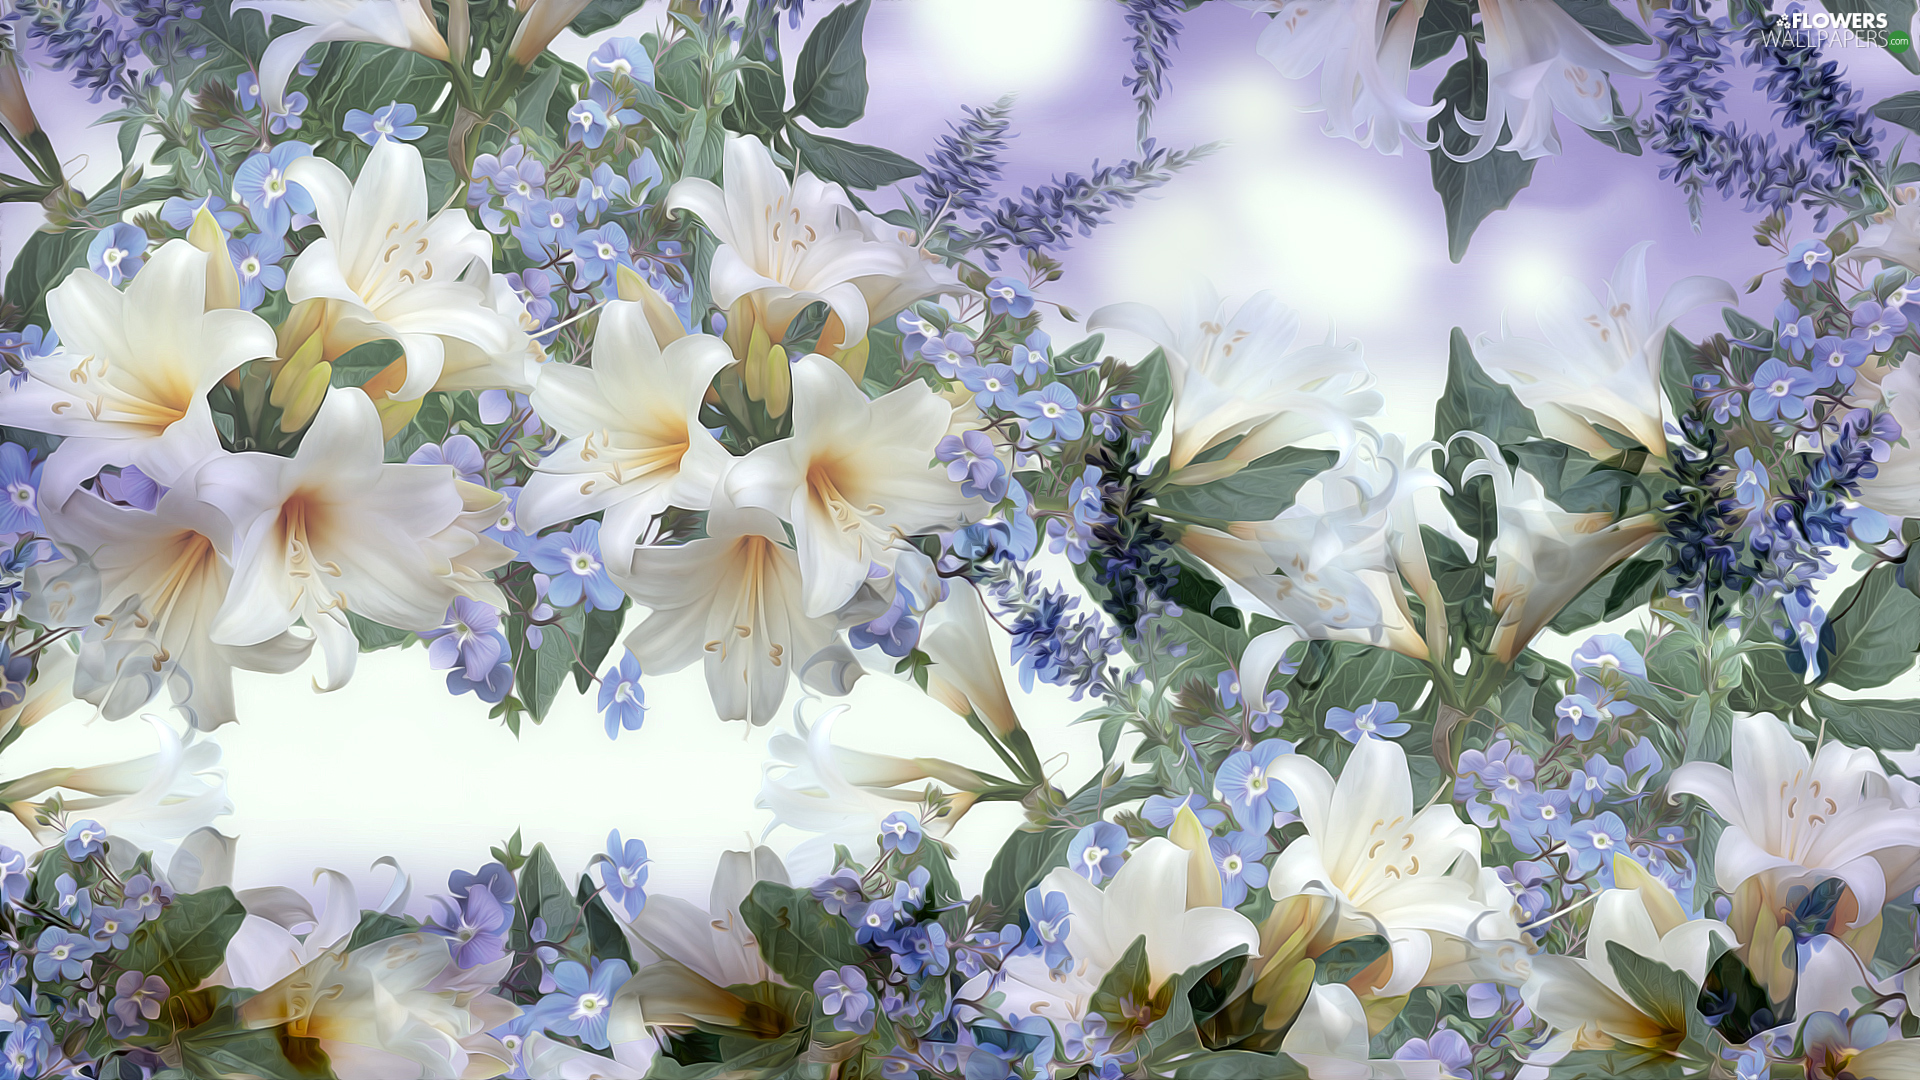 Flowers, Blue-eyed-Mary, graphics, lilies